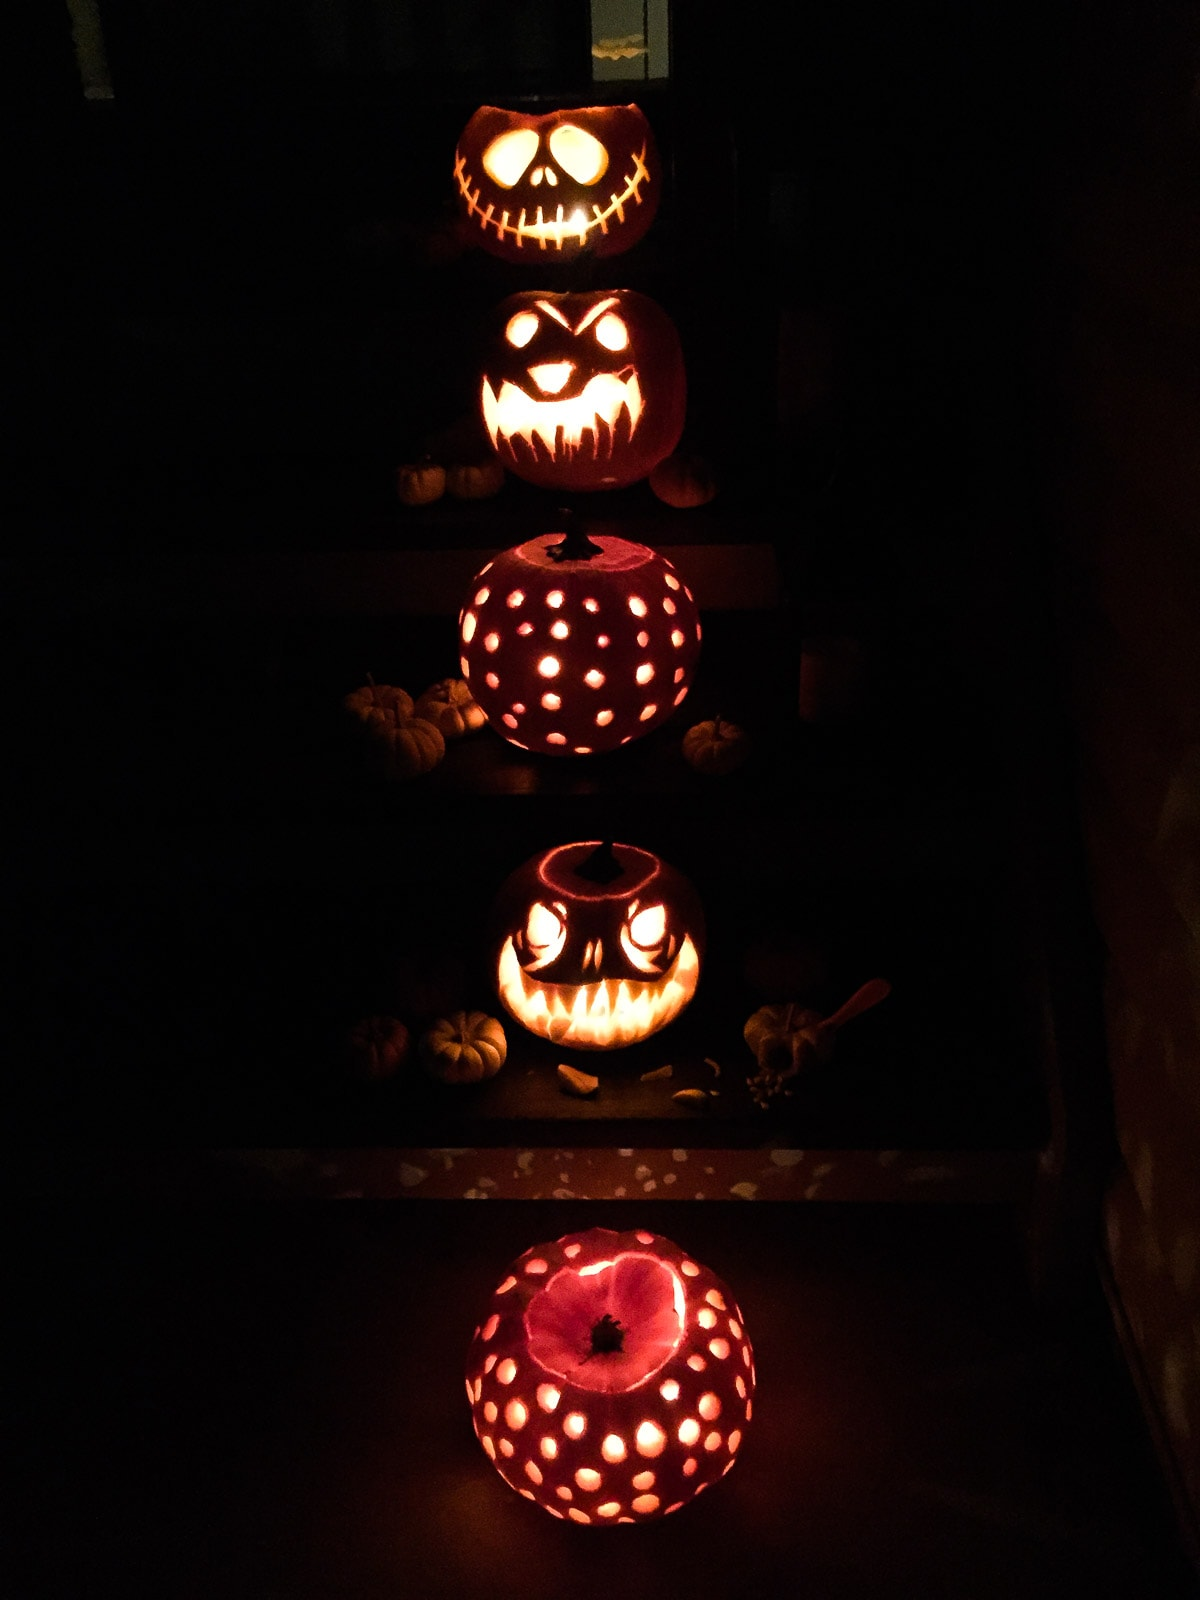 Carving Pumpkins: Pumpkin Carving Ideas - A Pretty Life In The Suburbs